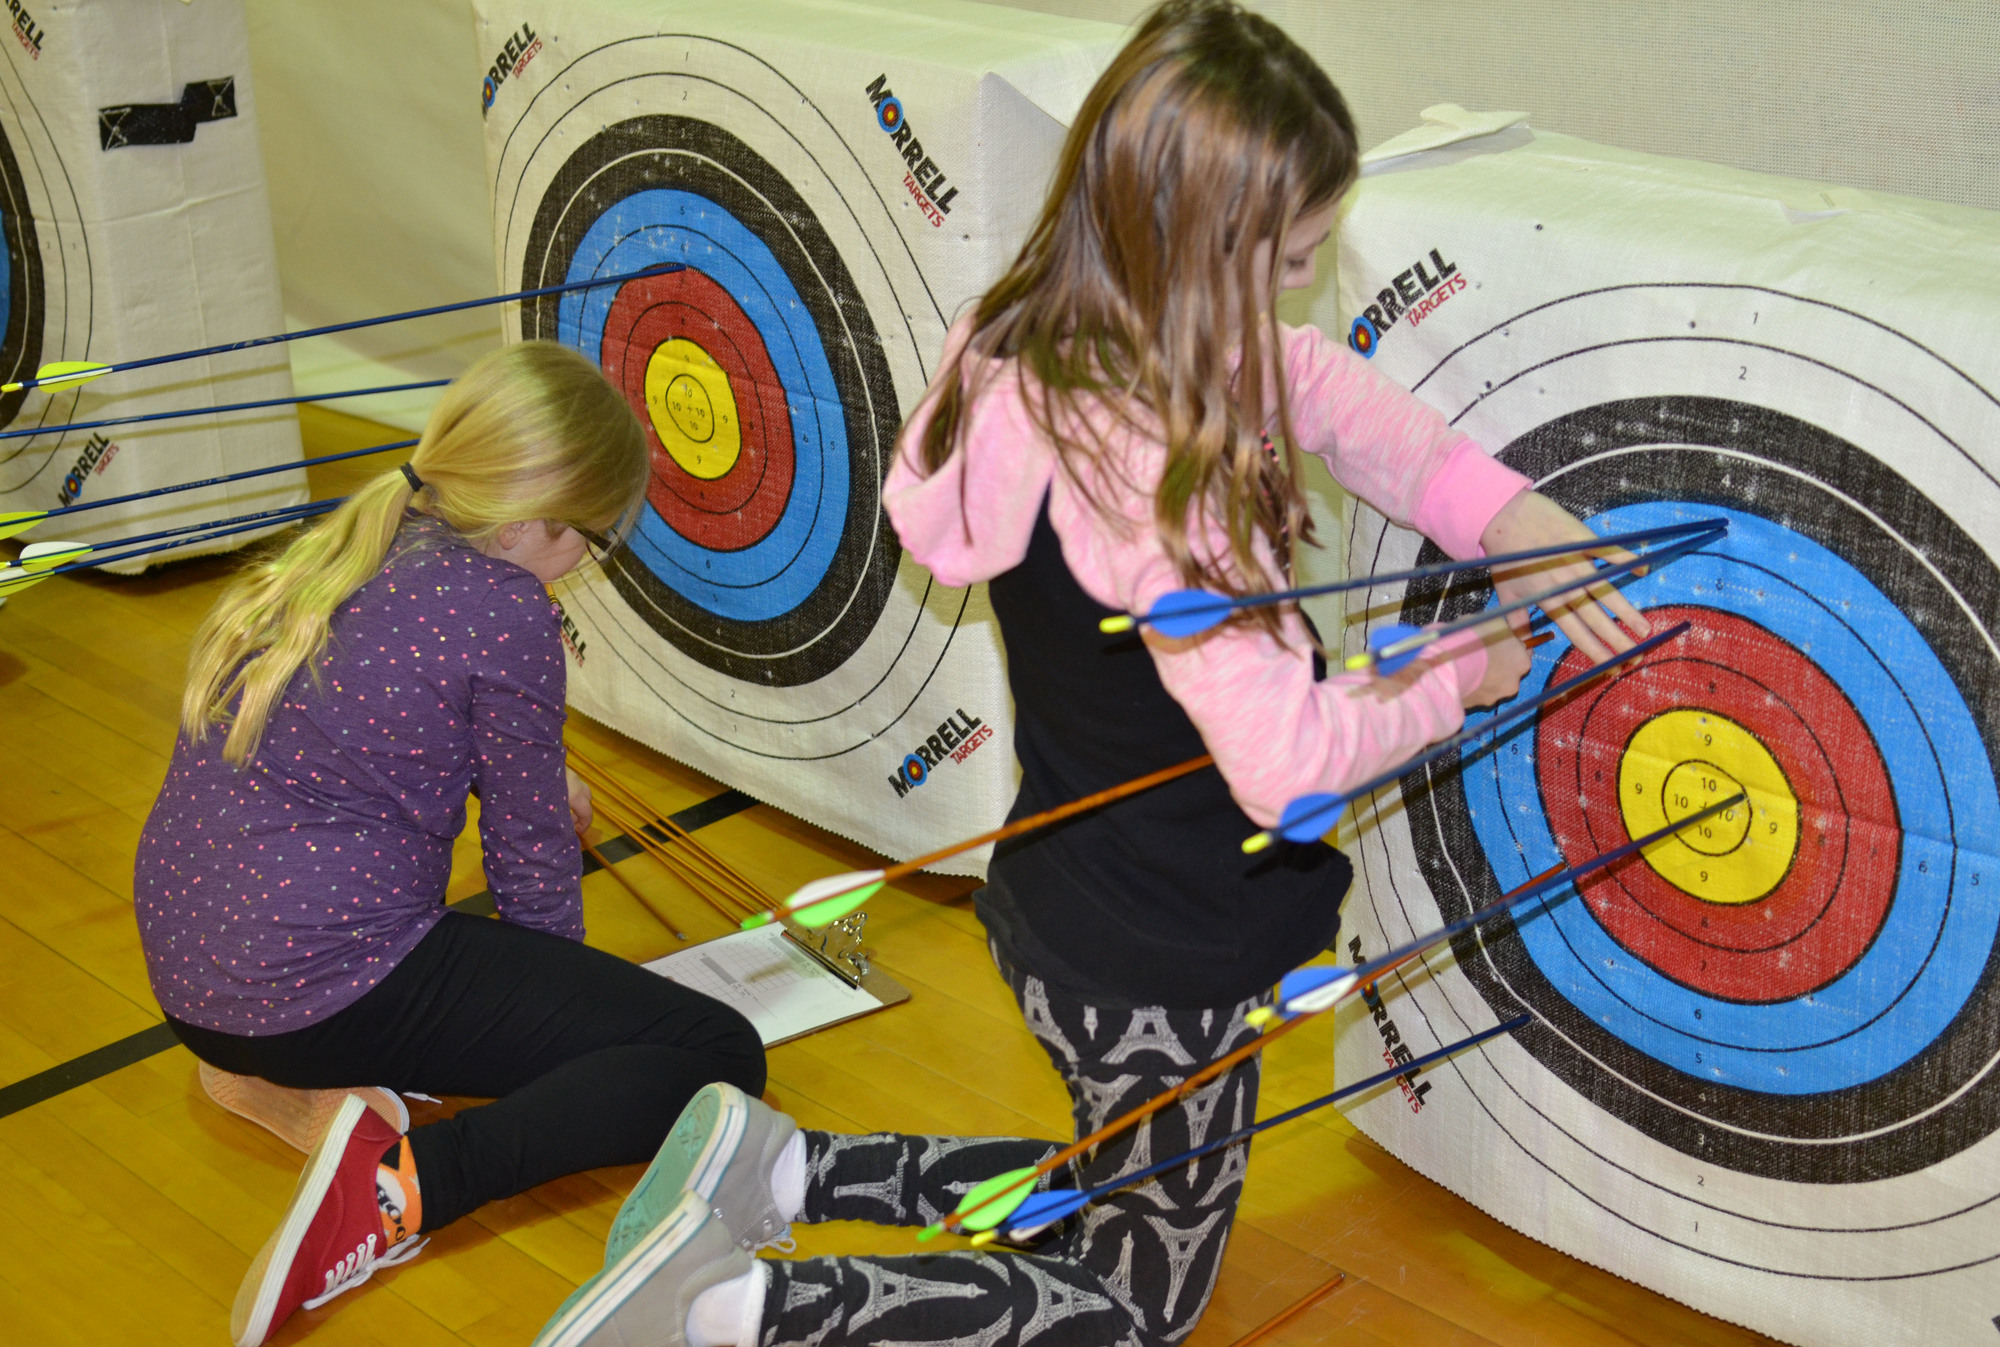 Cherry Creek Elementary School archers check their scores and pull their arrows.